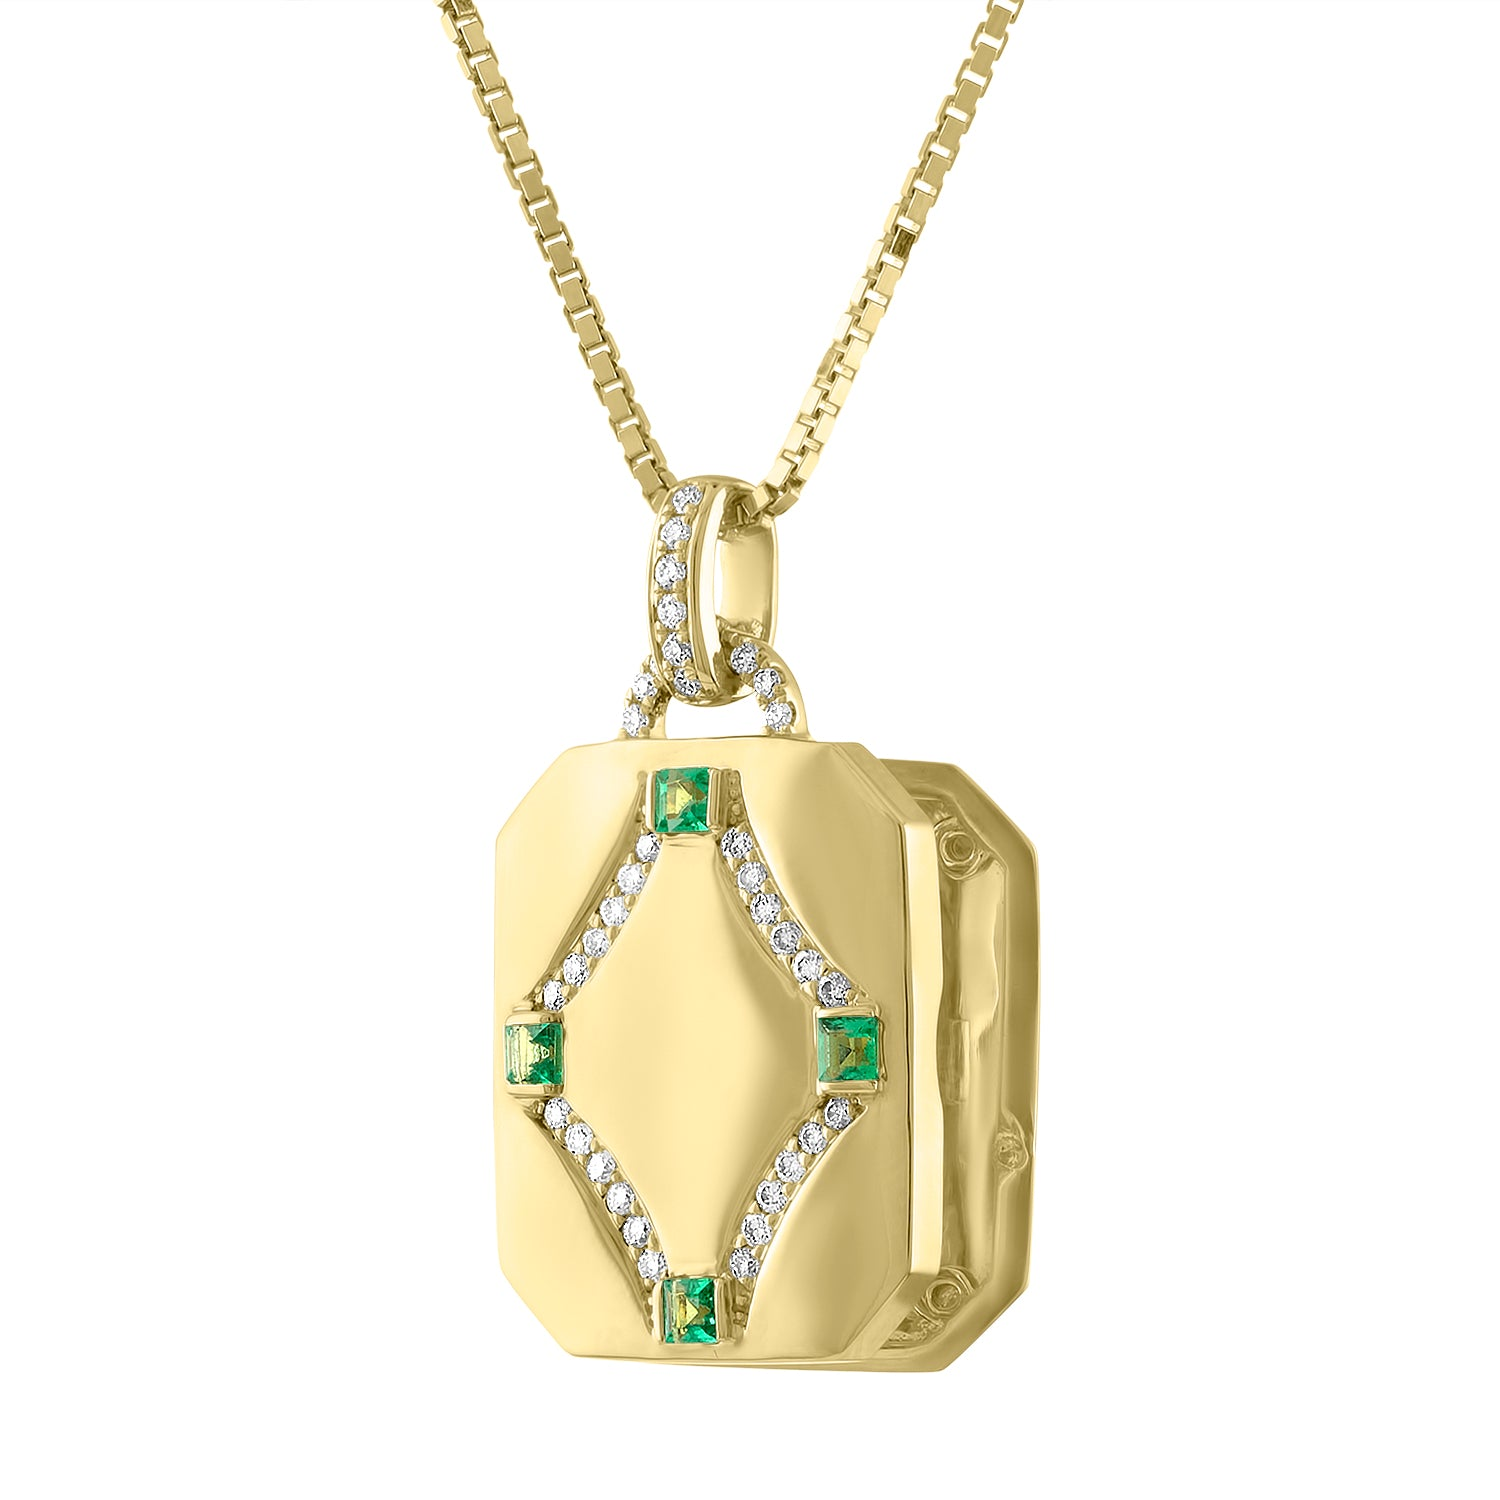 rectangular locket with emerald 4 emerald stones and diamond design in center